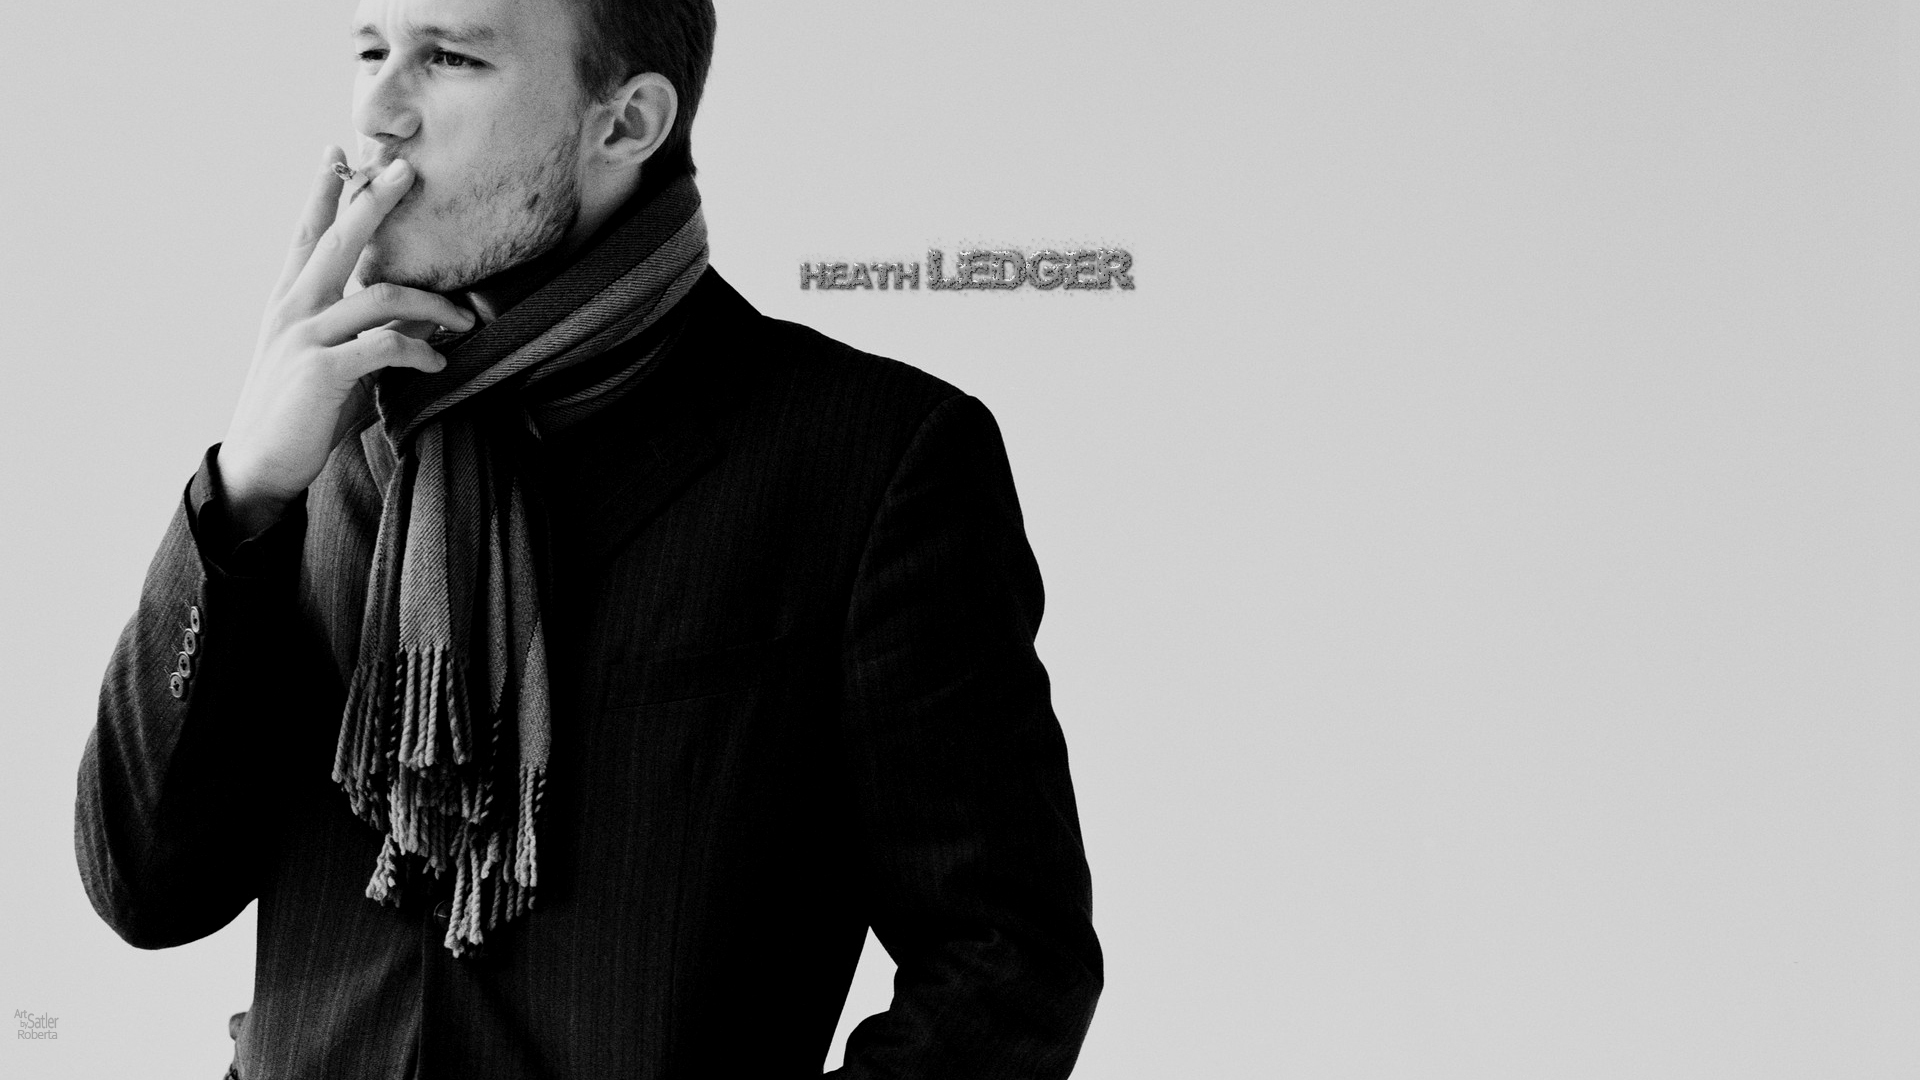 heath ledger   Heath Ledger Wallpaper 12589478 1920x1080